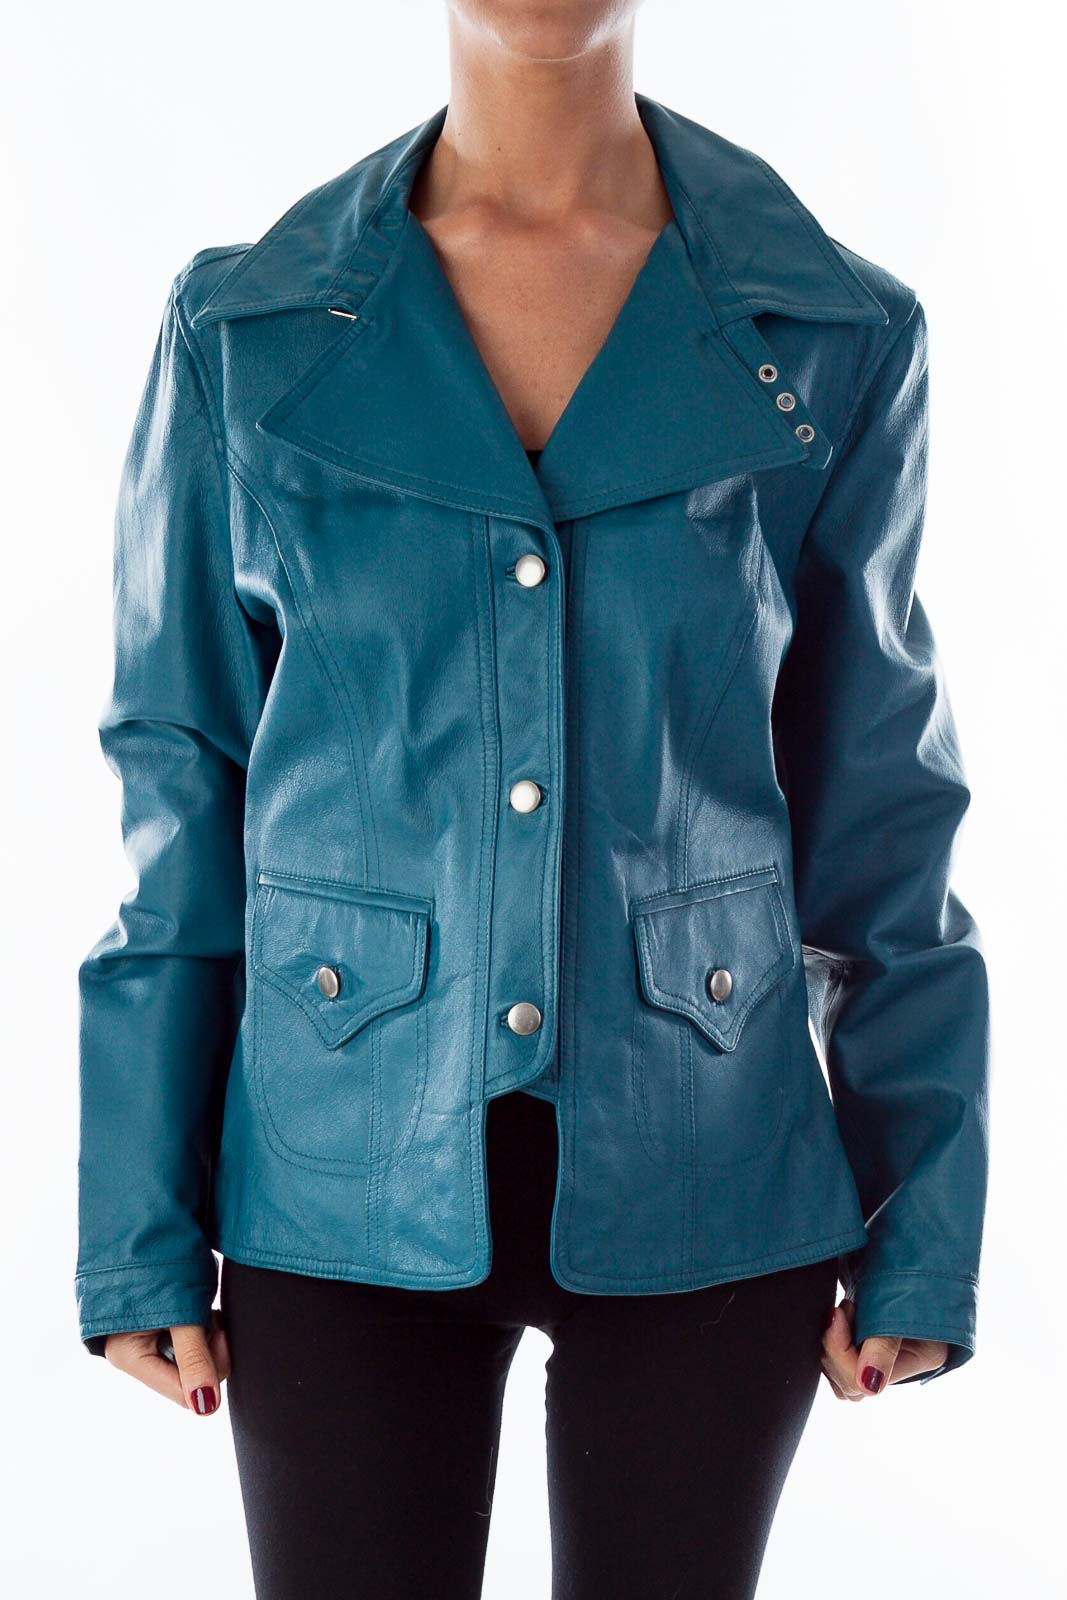 Turquoise Leather Jacket Front